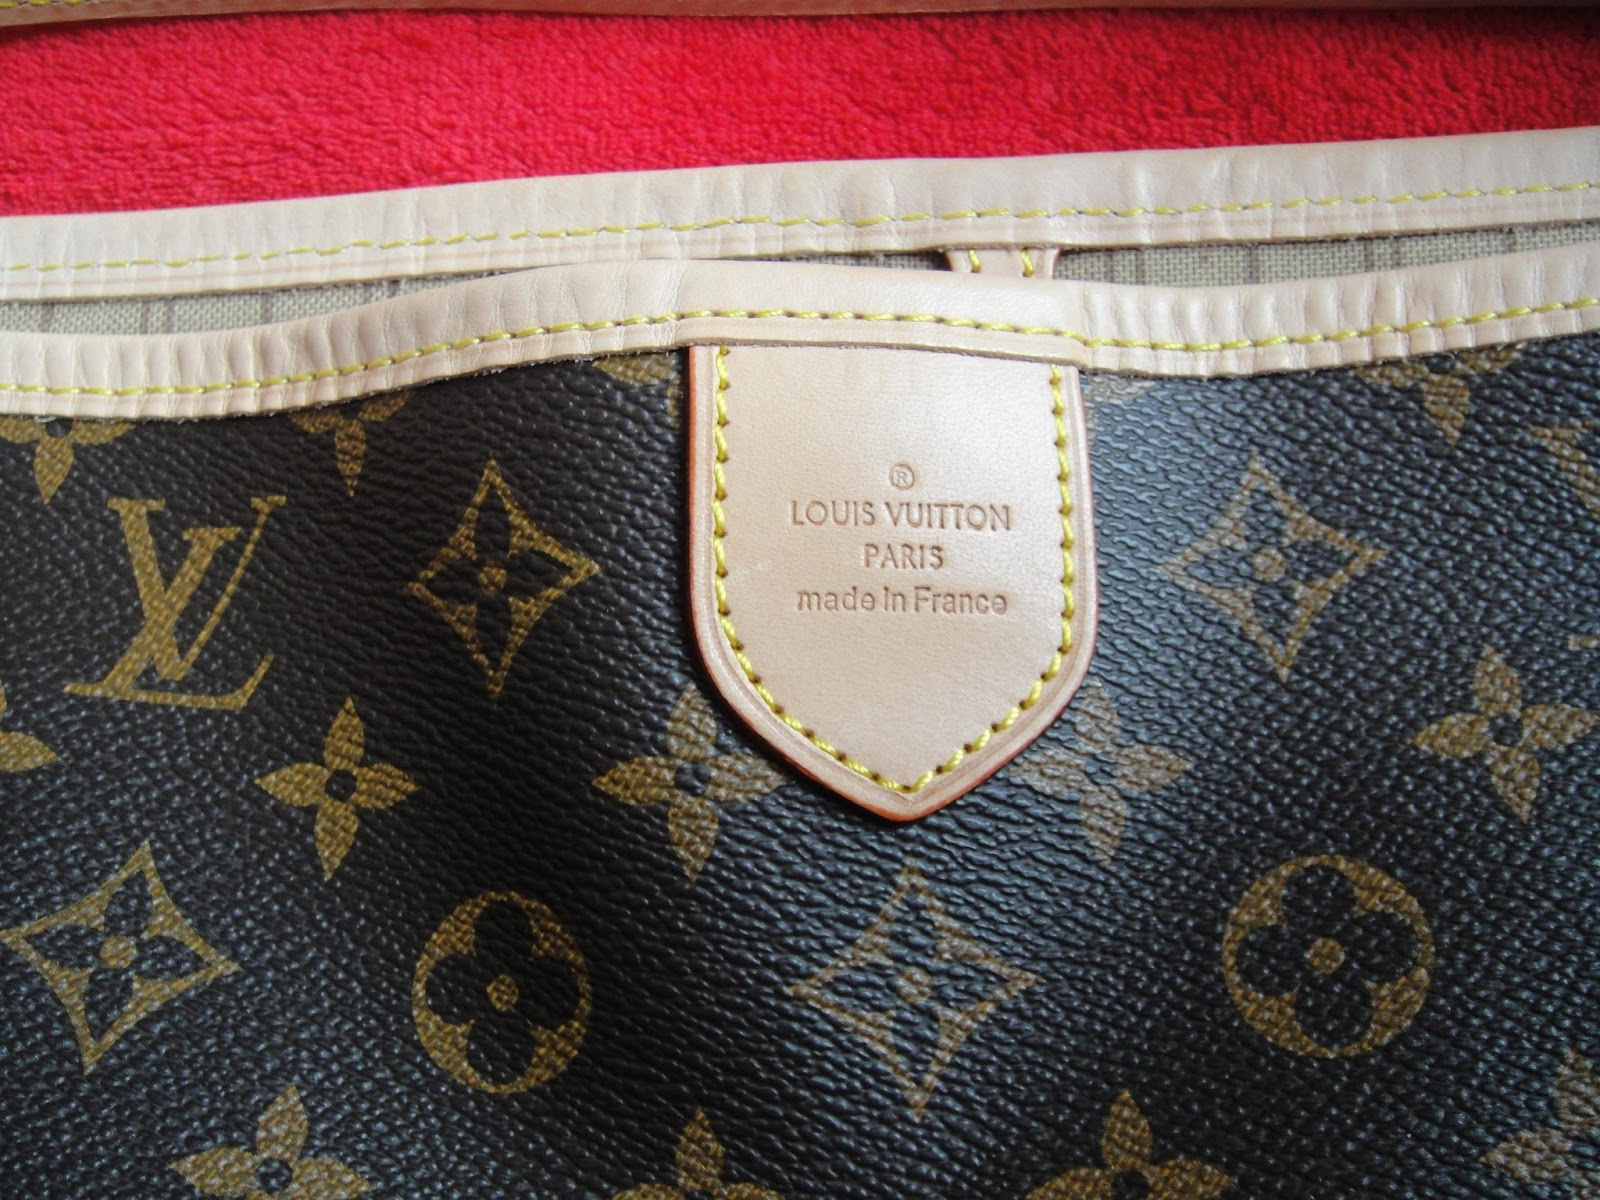 8c715d9a4791 Up for sale is Louis Vuitton Delightful GM. The item was slightly used and  still in good condition. Sale price  GBP200 (negotiable)